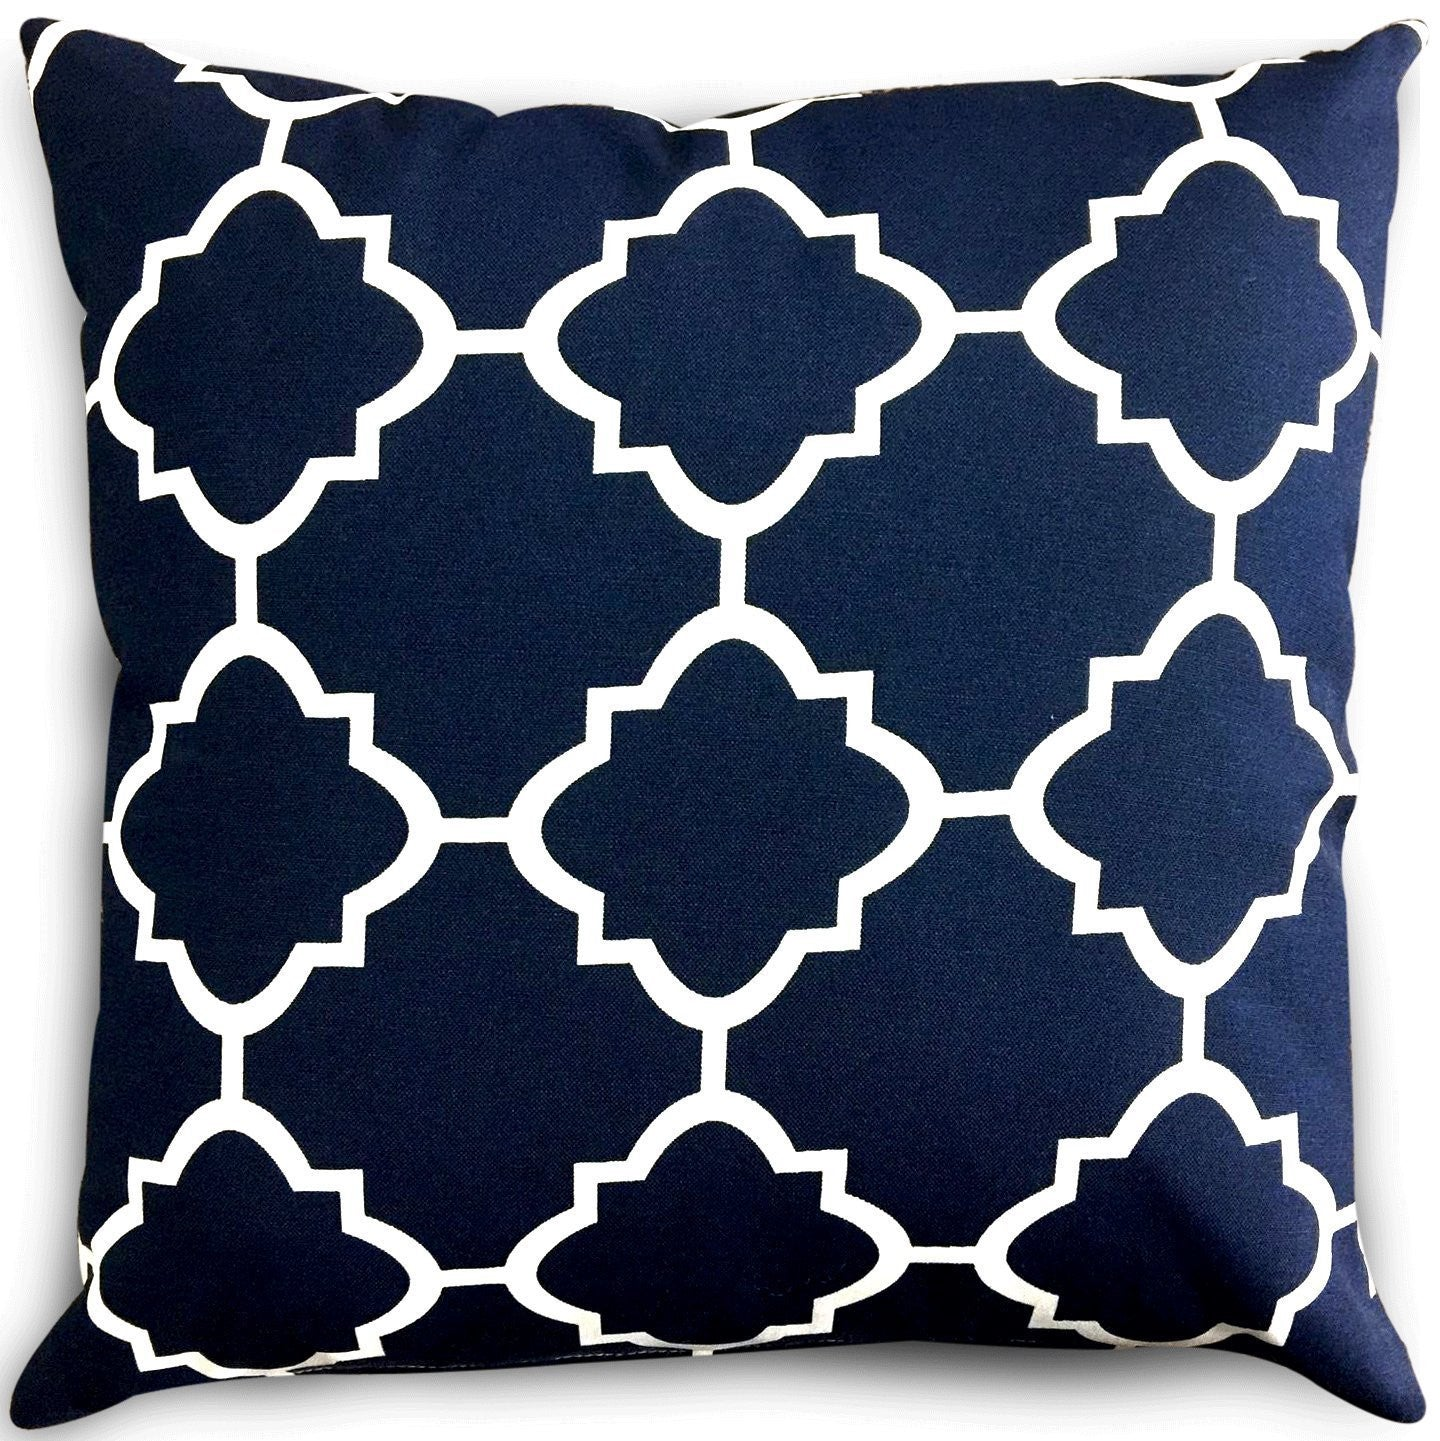 Decorative Square Throw Pillows